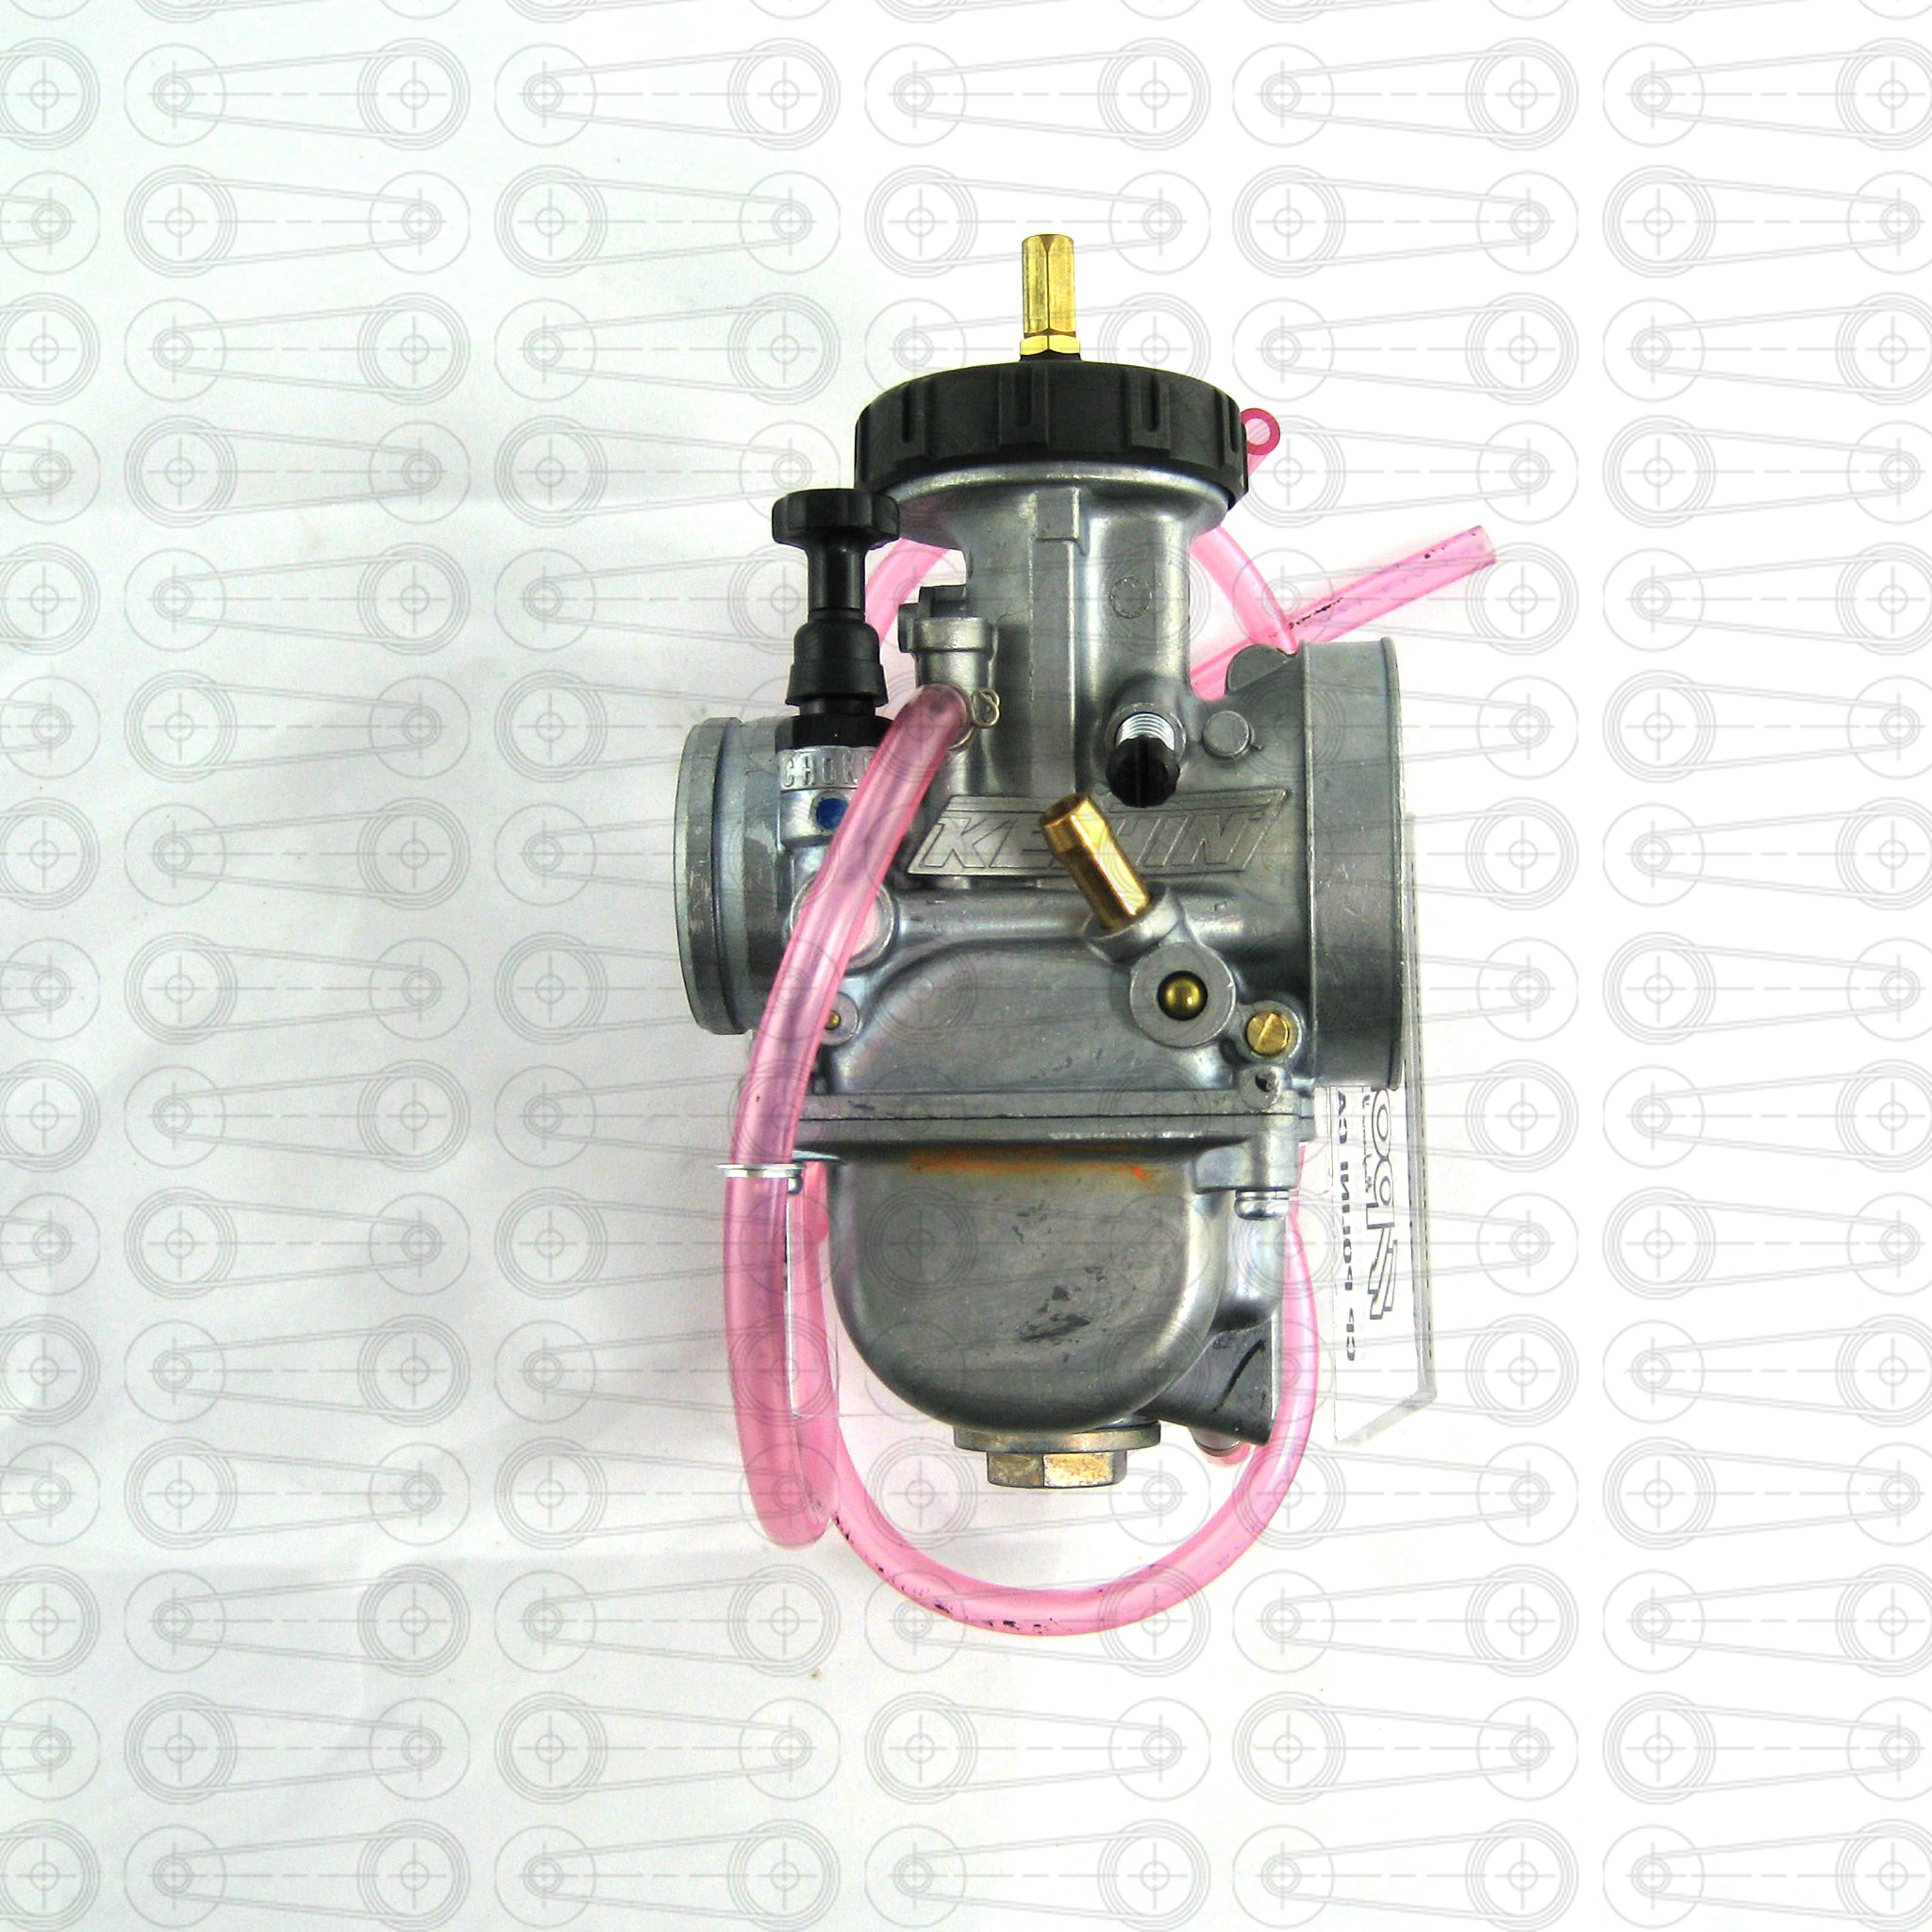 KEIHIN - 33mm Carburetor (Universal)